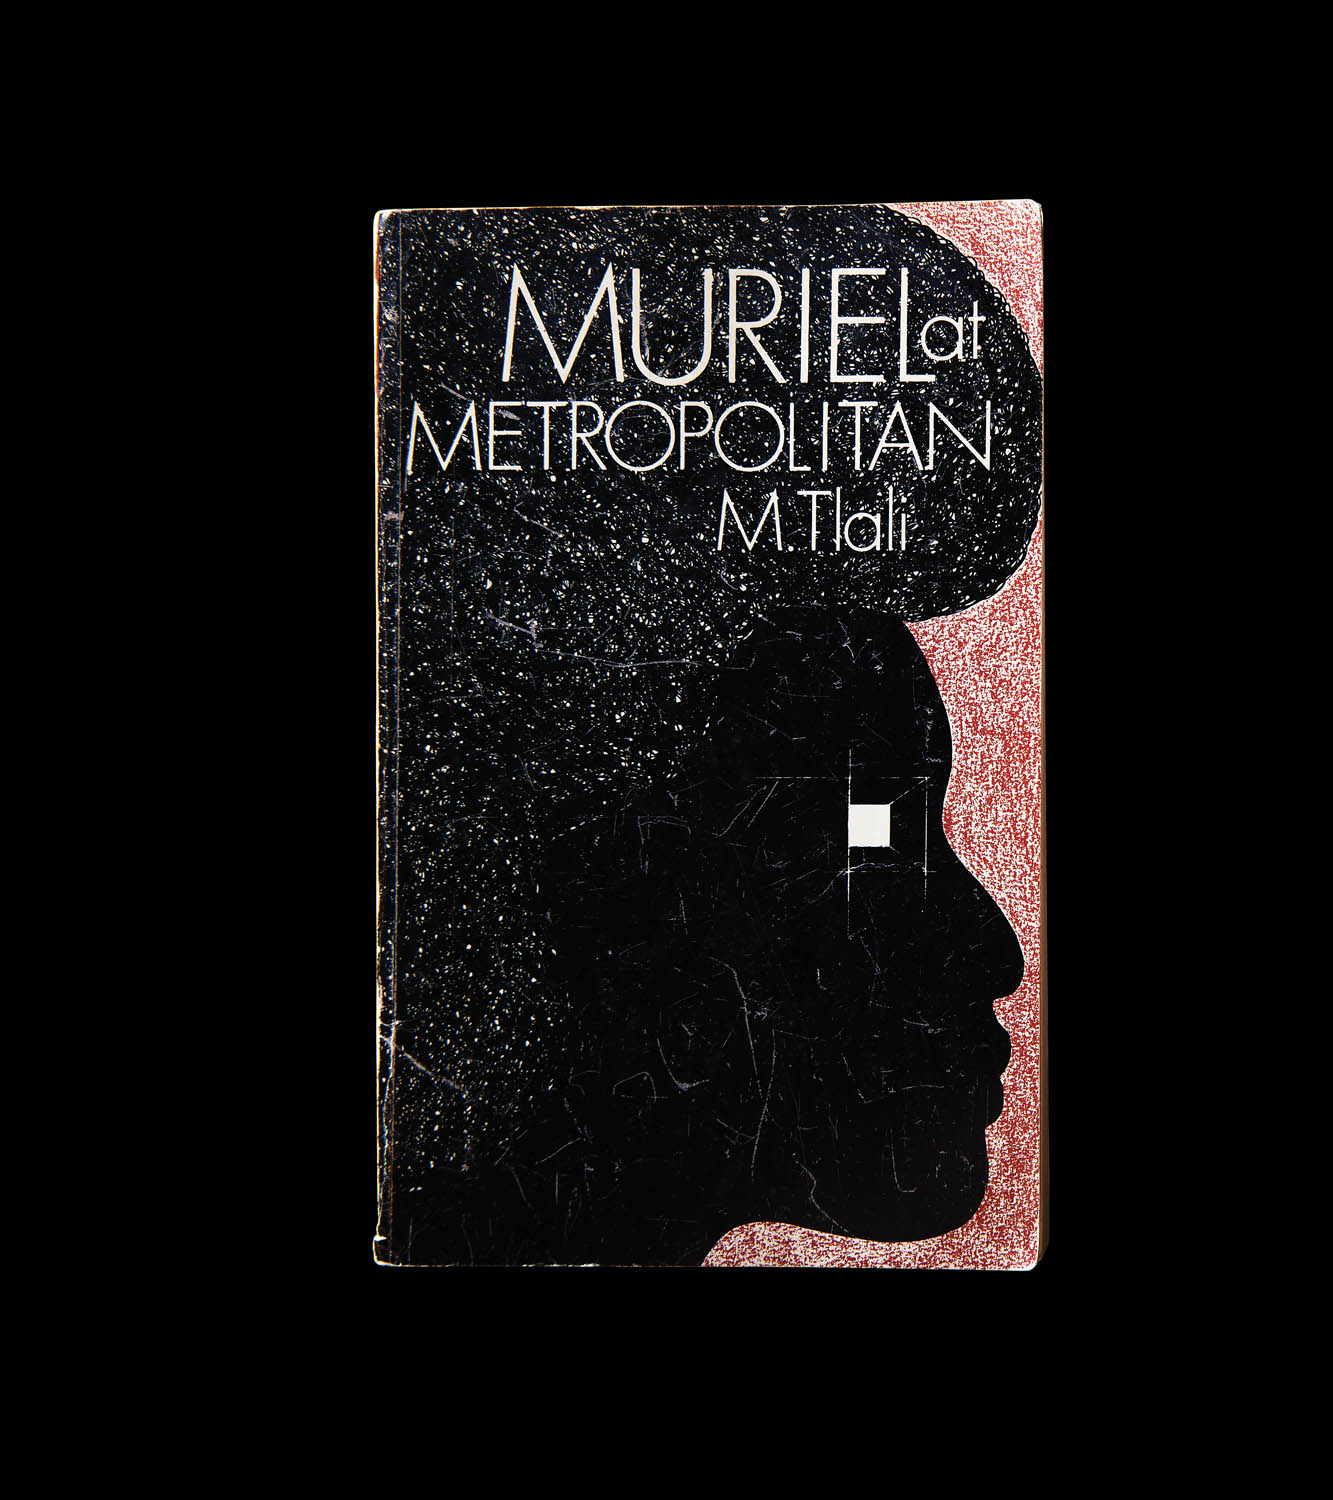 Miriam Tlali, Muriel at Metropolitan (Ravan Press, 1975). The first novel published by a woman in South Africa, Muriel was banned for several years after publication. Photographed by Jo Emmerson